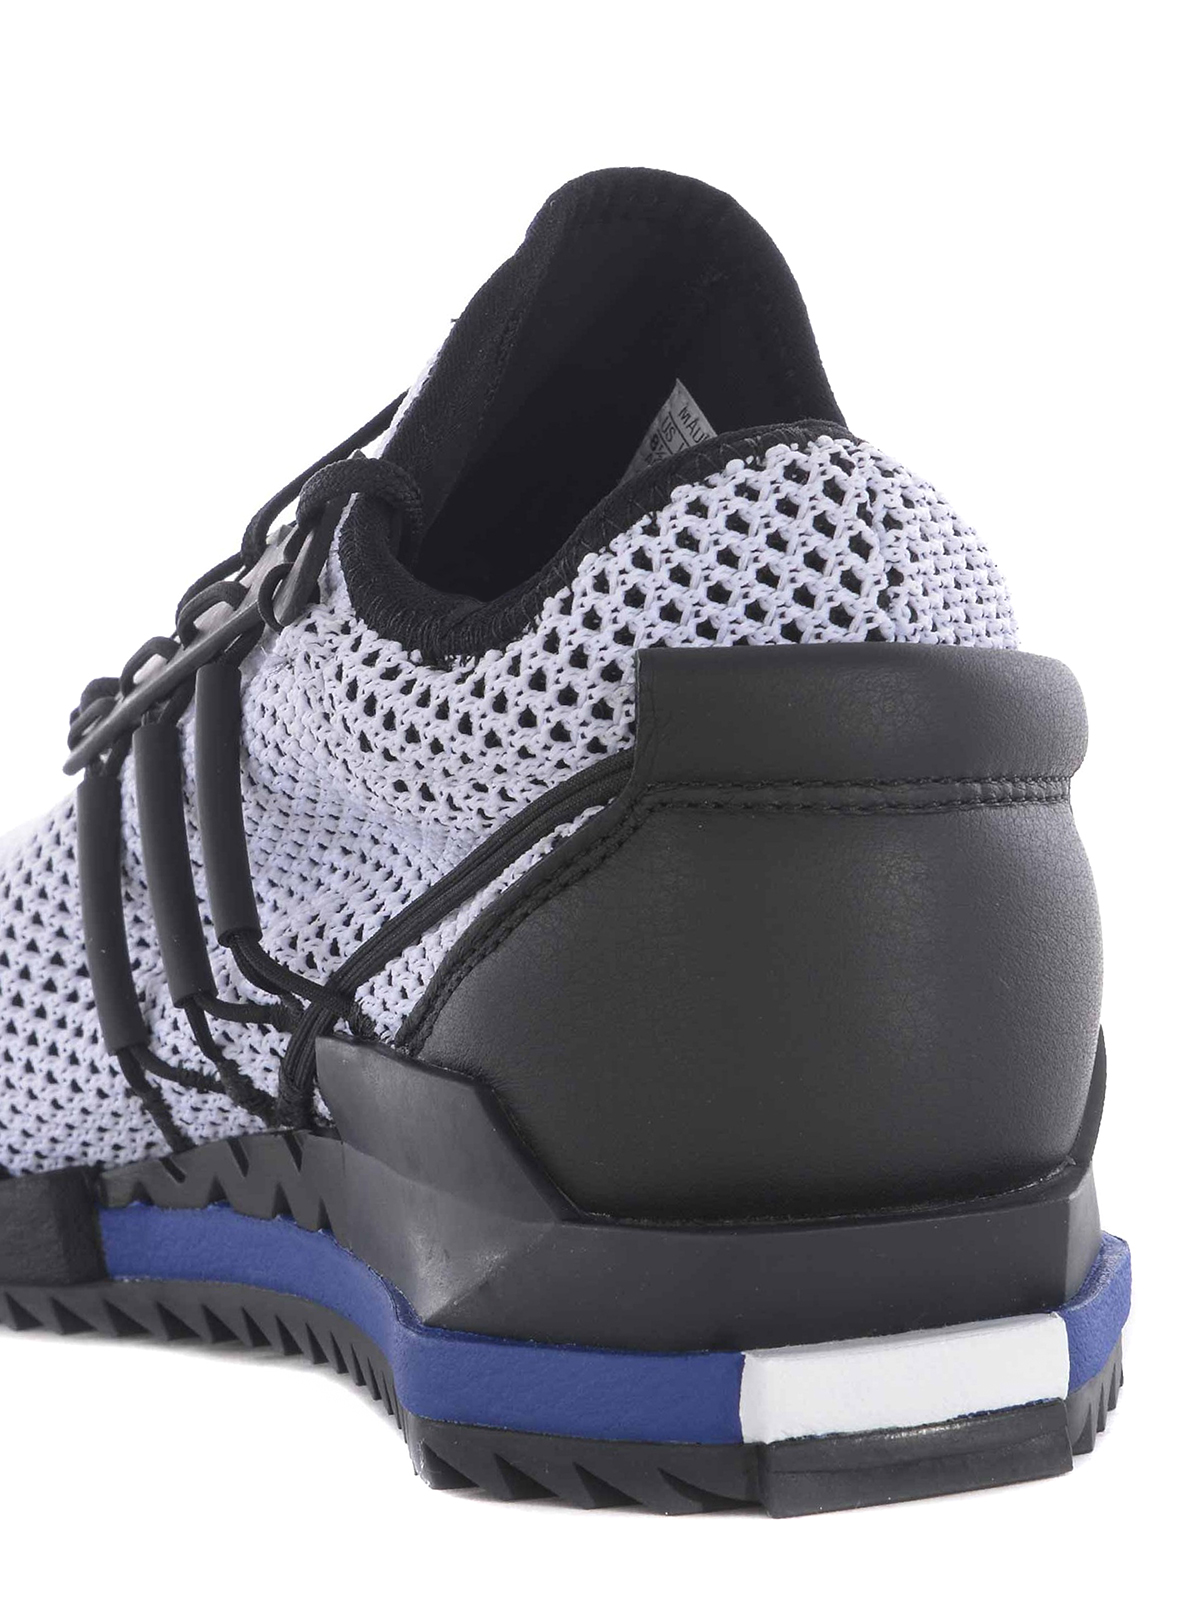 e7b8b64d2a8569 Adidas Y-3 - Harigane primeknit white sneakers - trainers ...